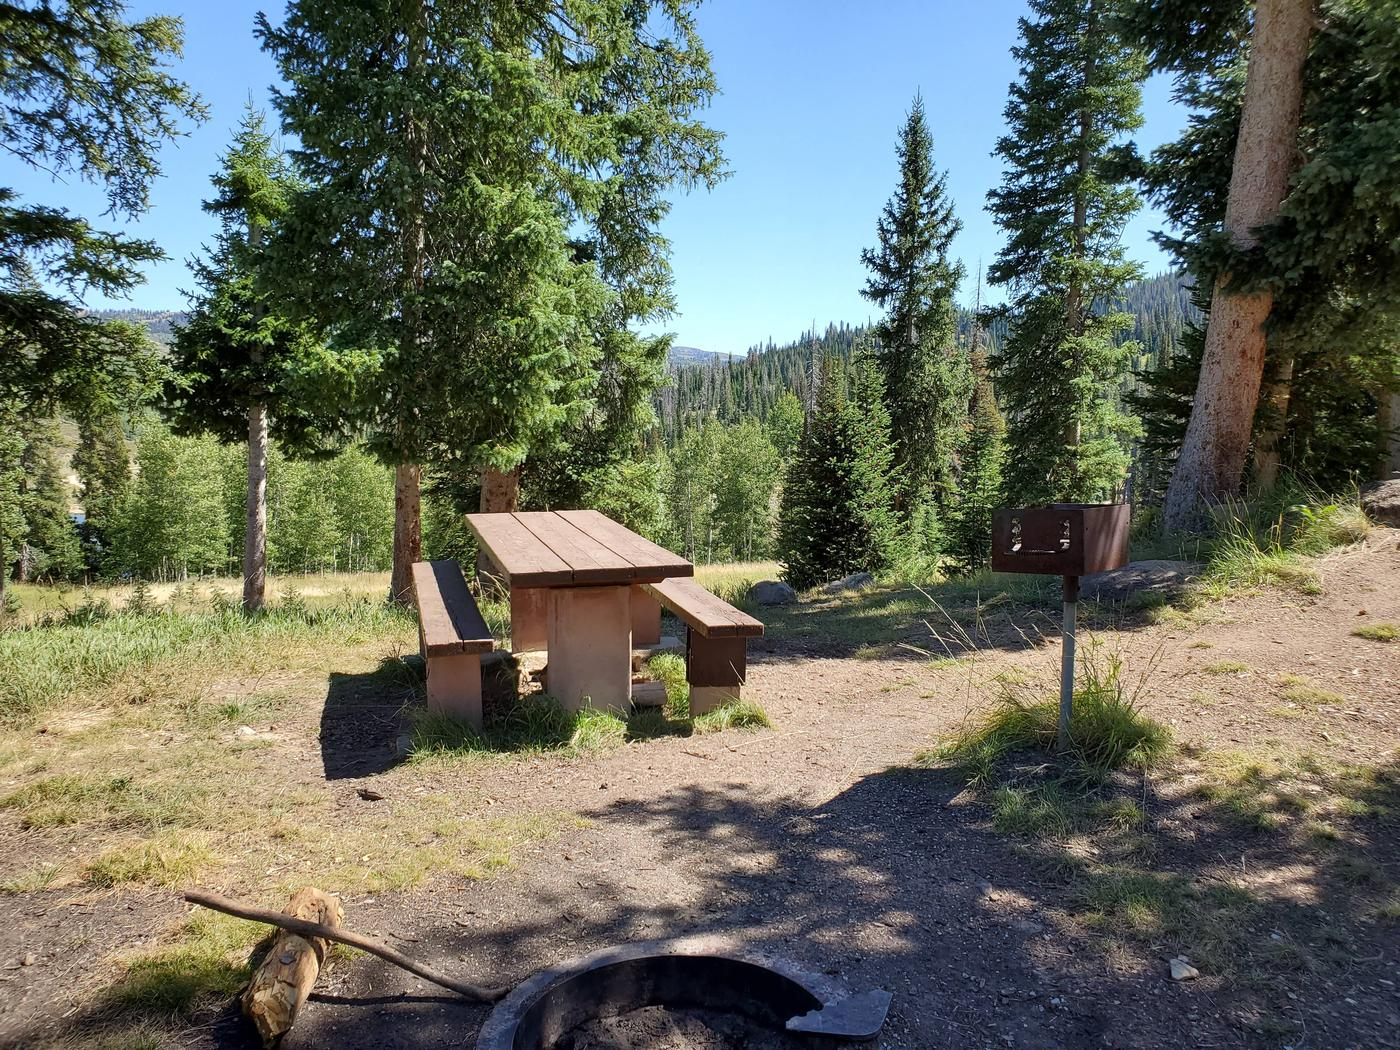 Flat Canyon Campground Site #9bFlat Canyon Campground Site #9